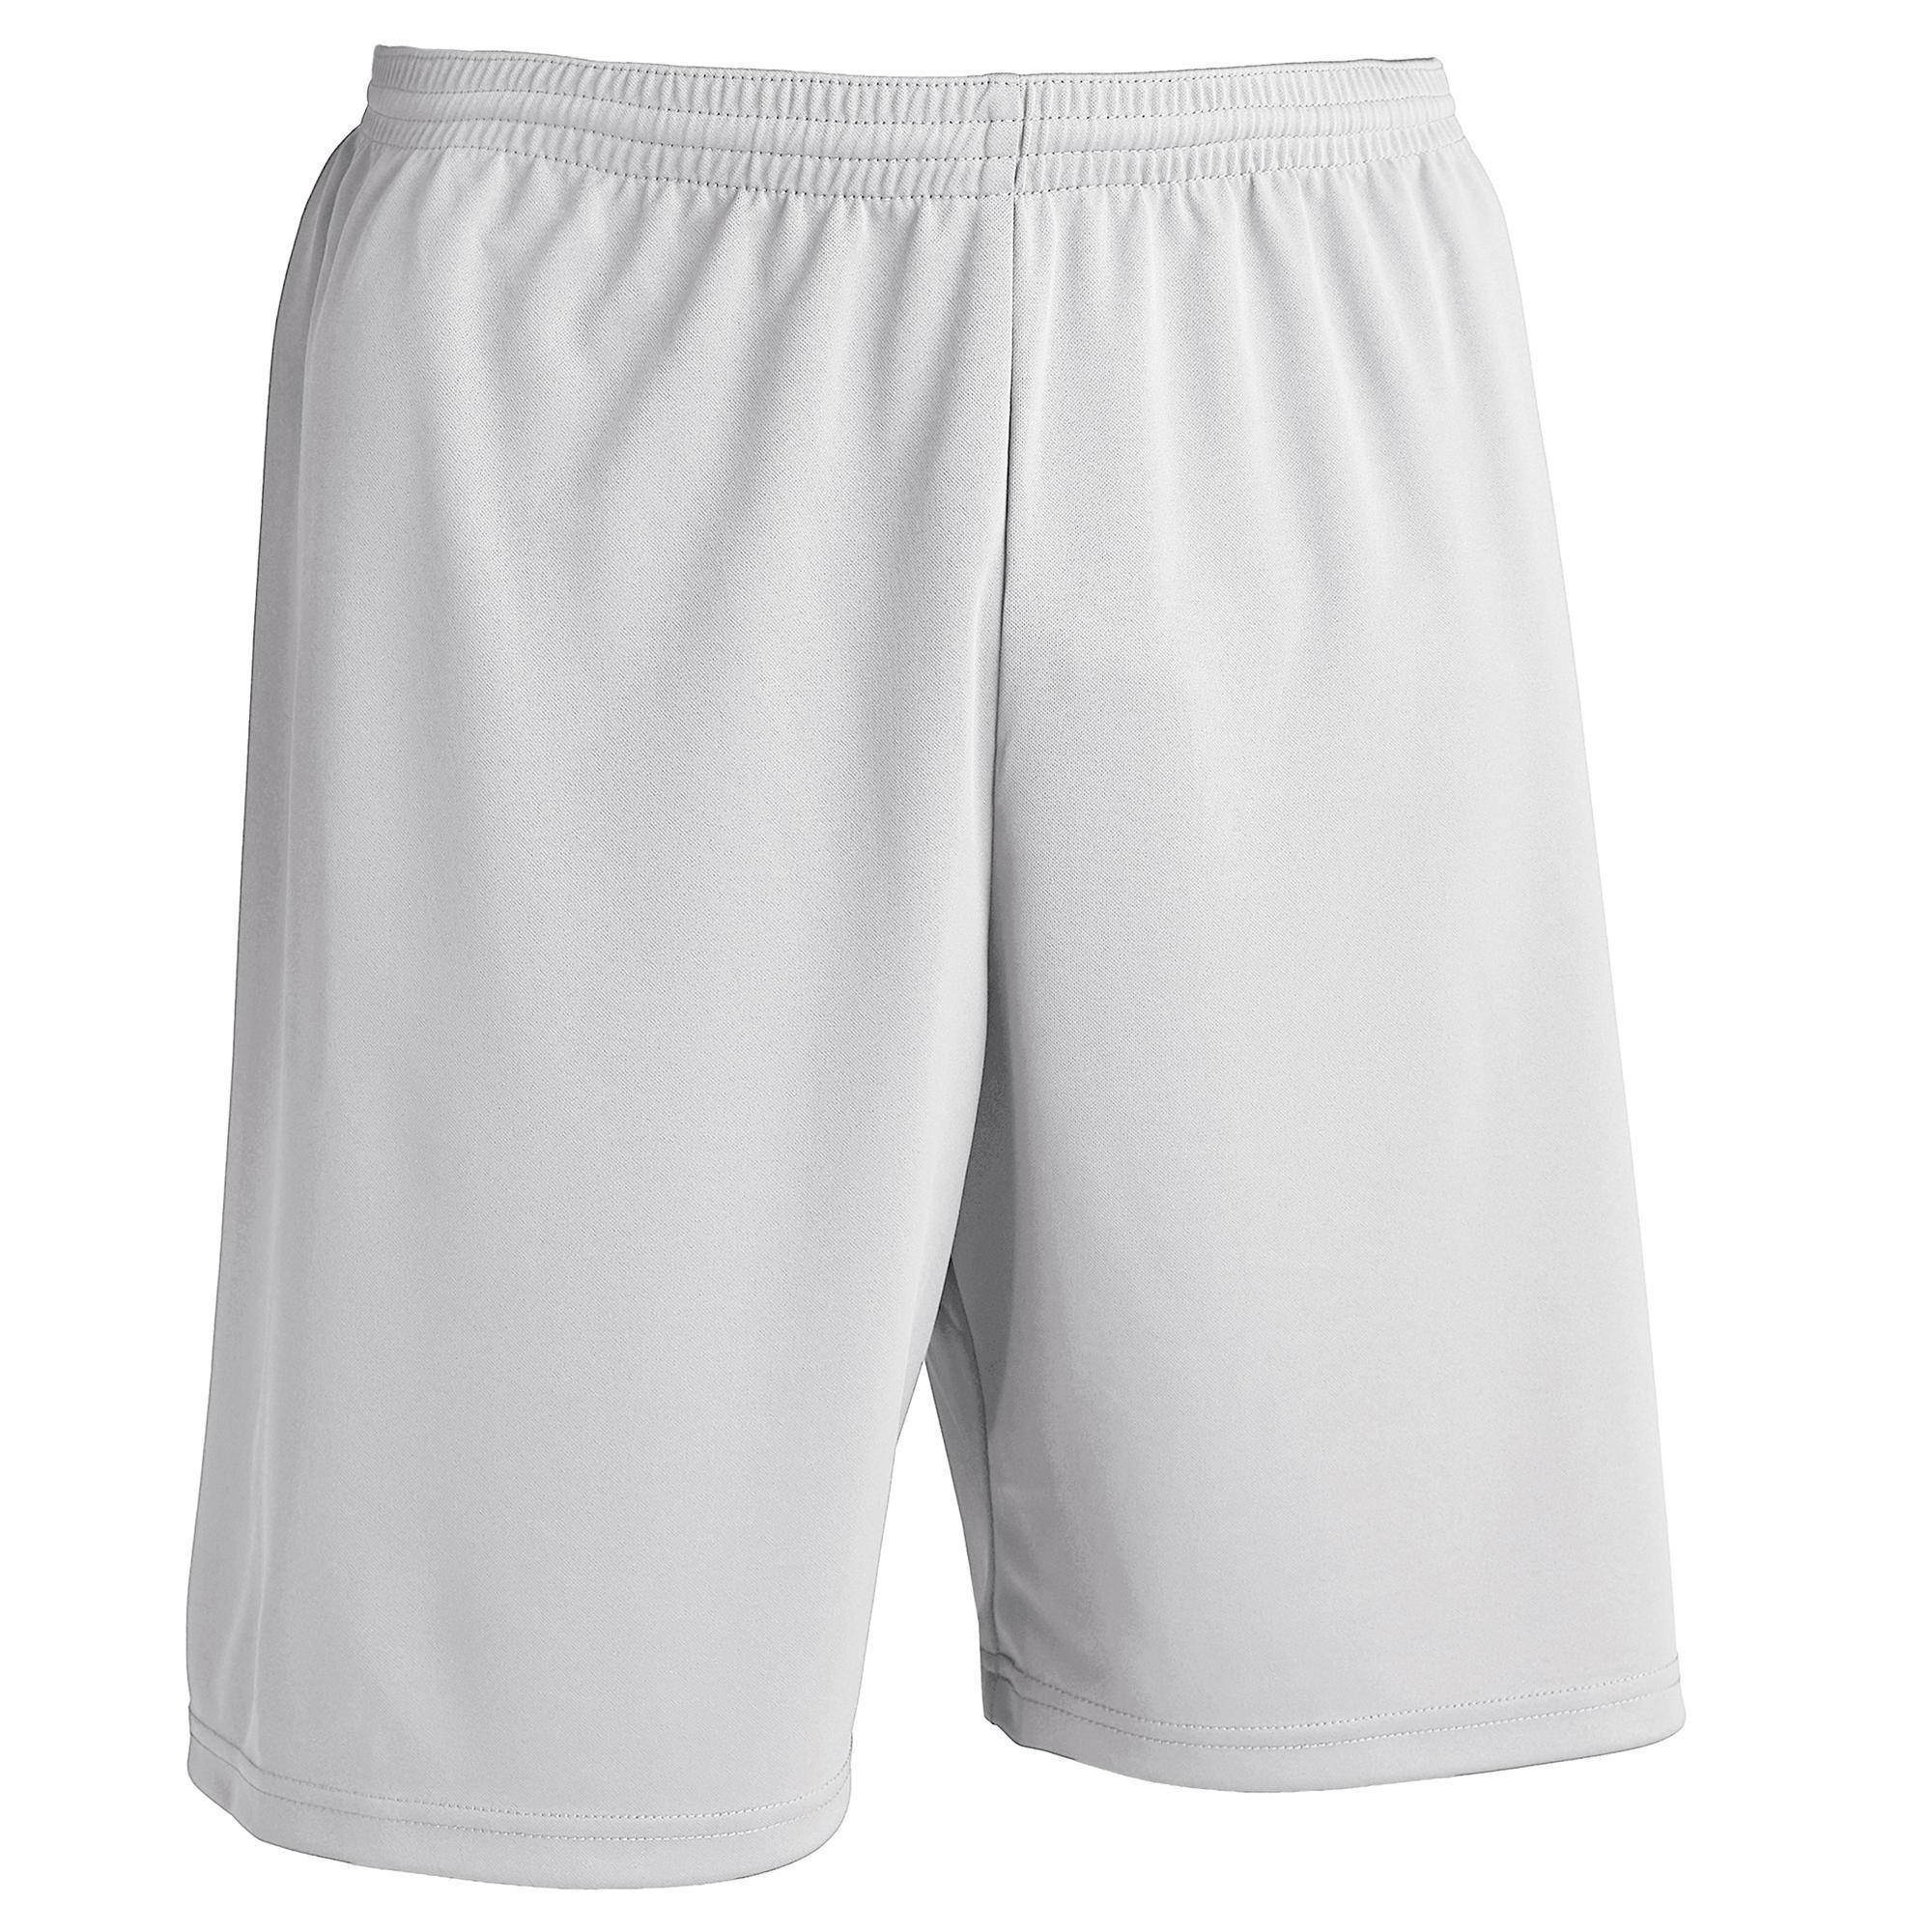 Short de football adulte F100 blanc  fbb4b5cb6da